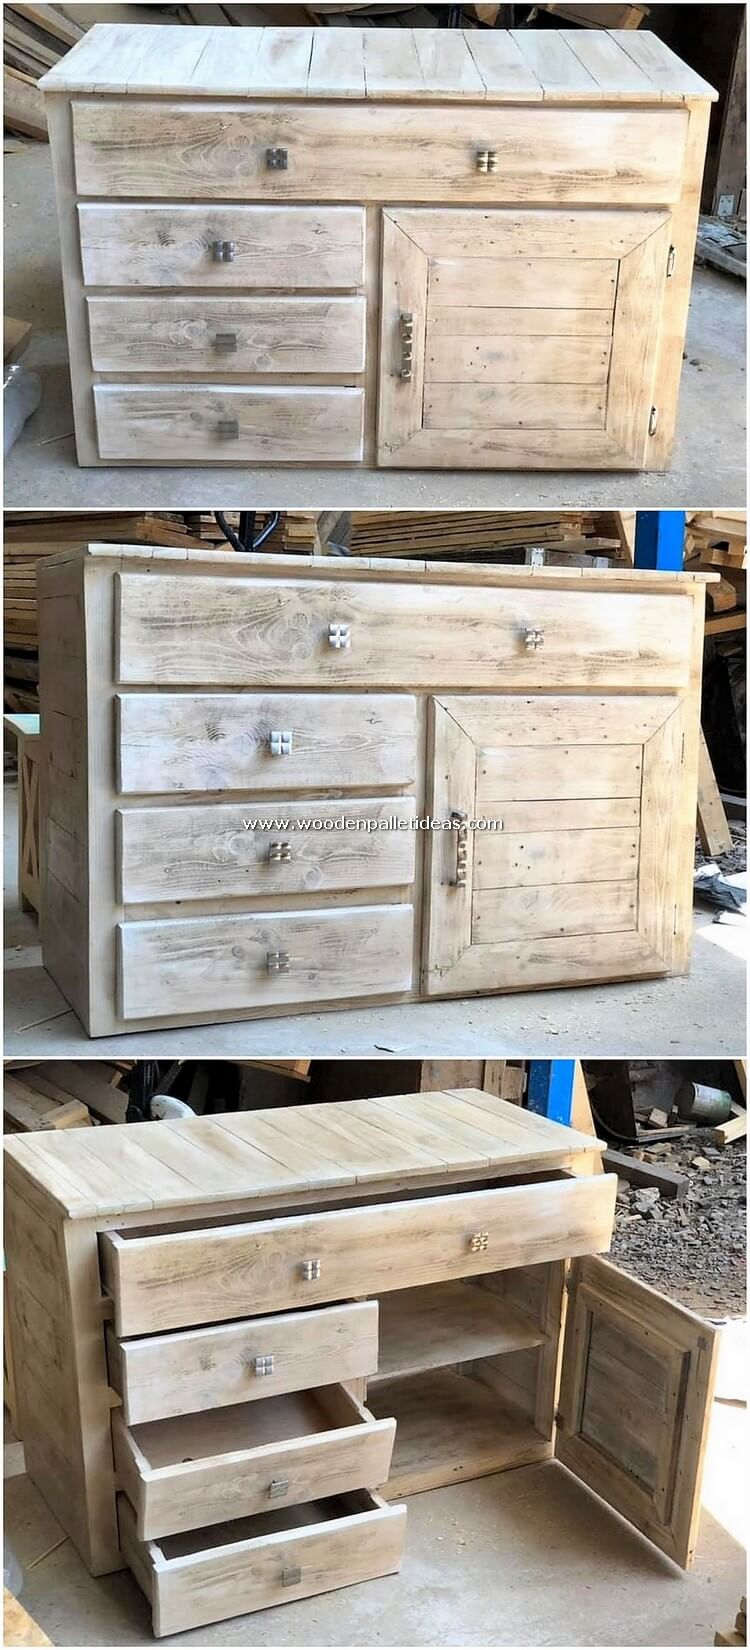 Pallet-Cabinet-with-Drawers